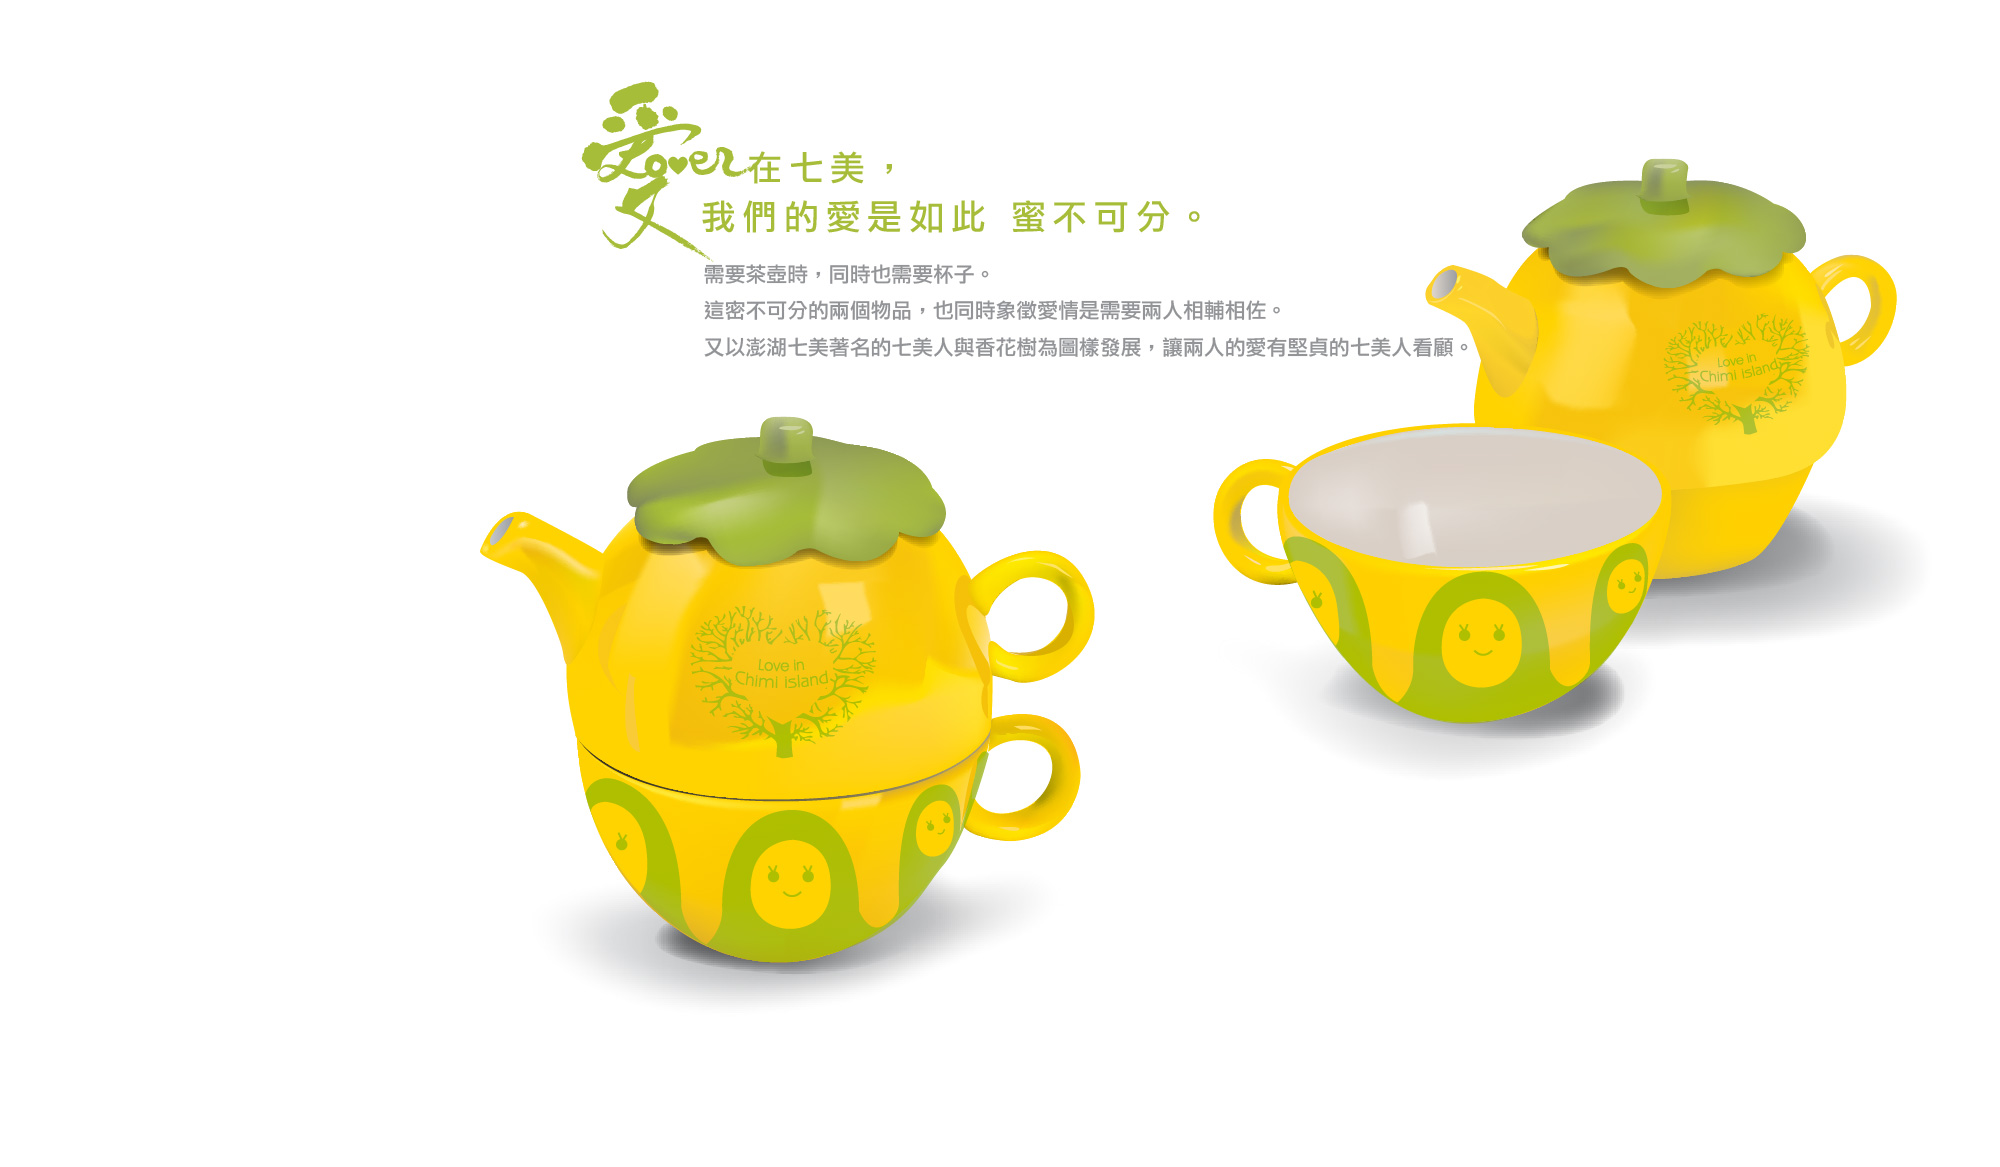 Chimei Product Design- B